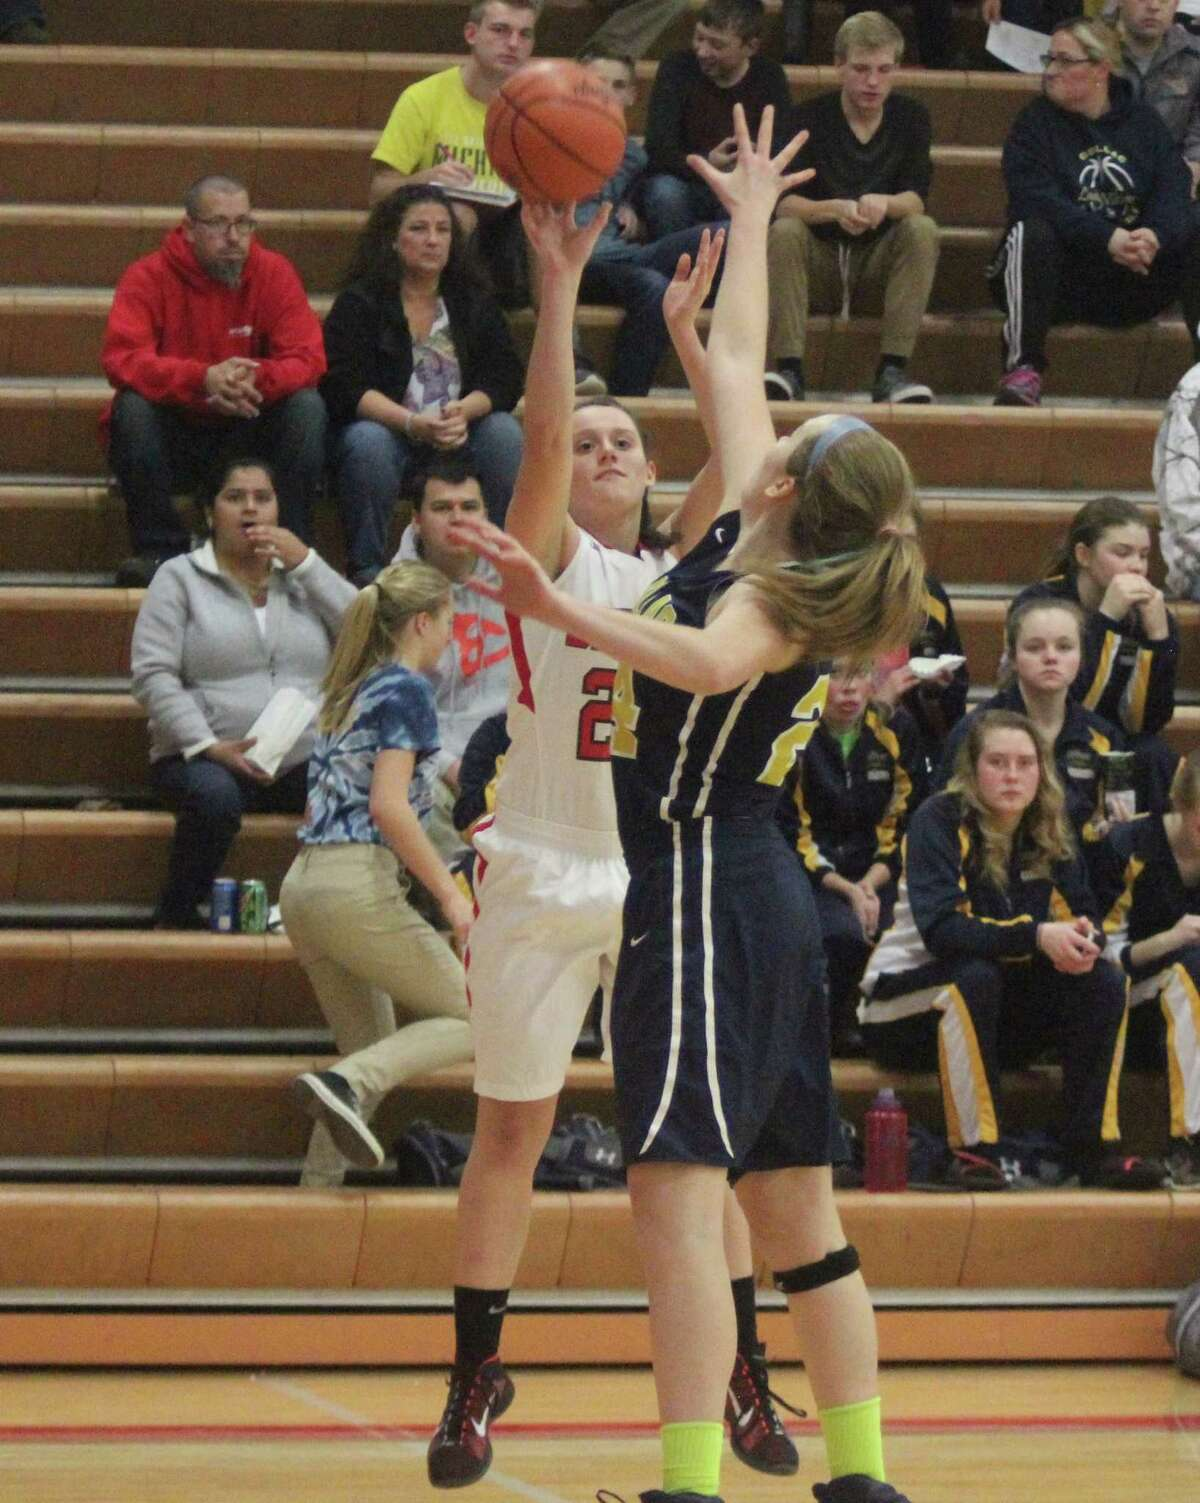 FROM DOWNTOWN: Abby Bretzke energizes the Huskies with an early three ball. (Photo/Robert Myers)